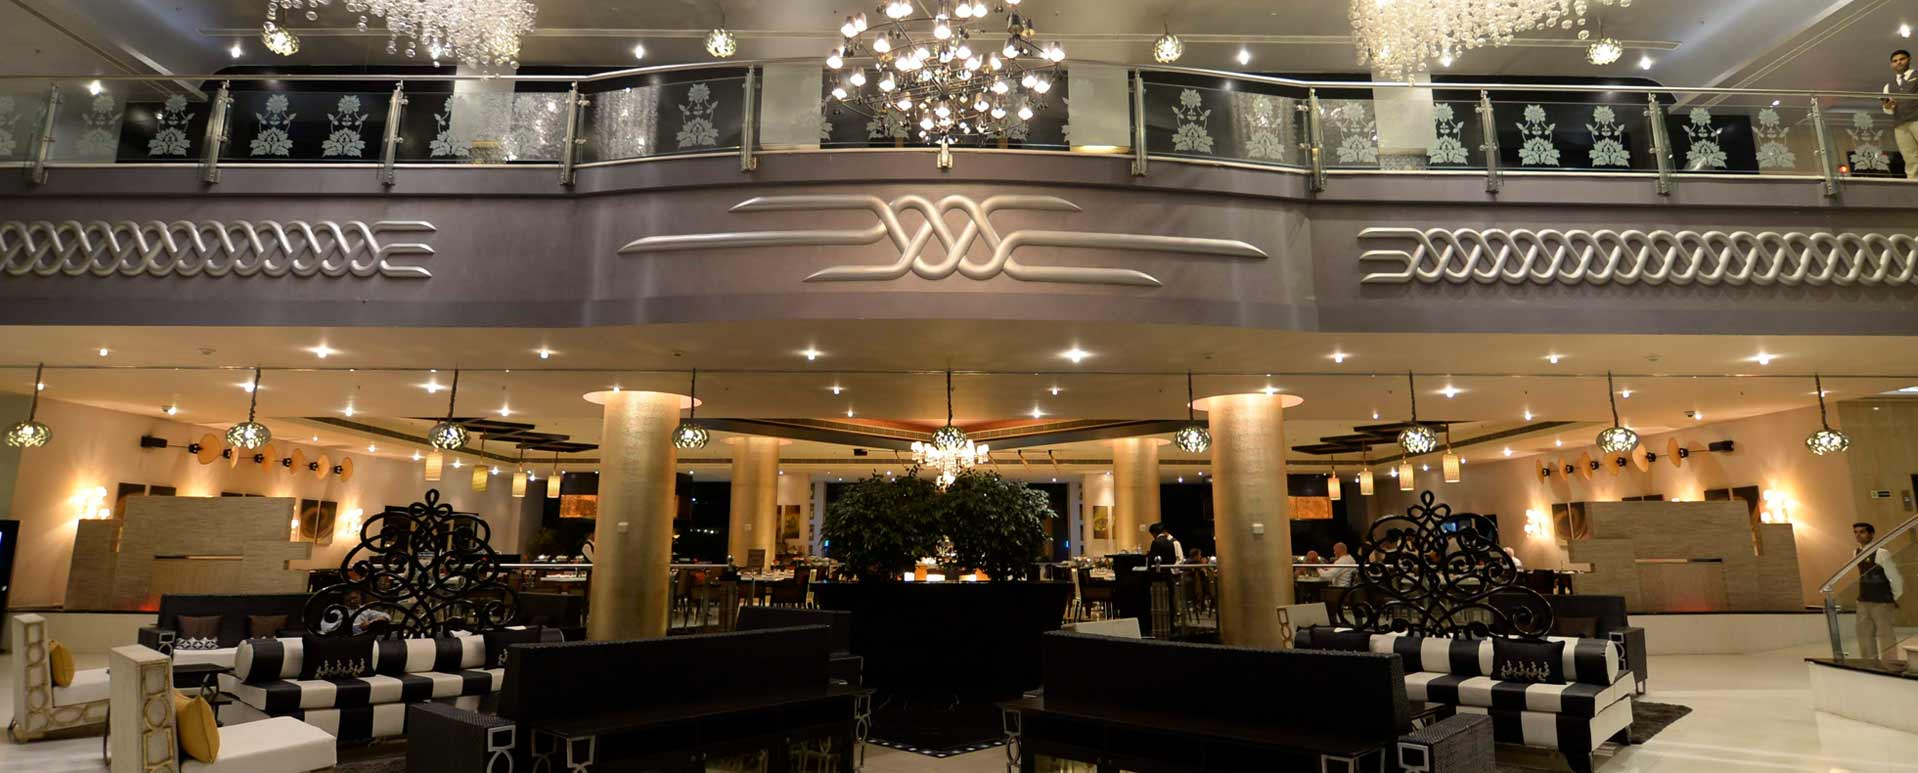 Hotels in Whitefield: Luxury Hotels in Bangalore, India - Zuri